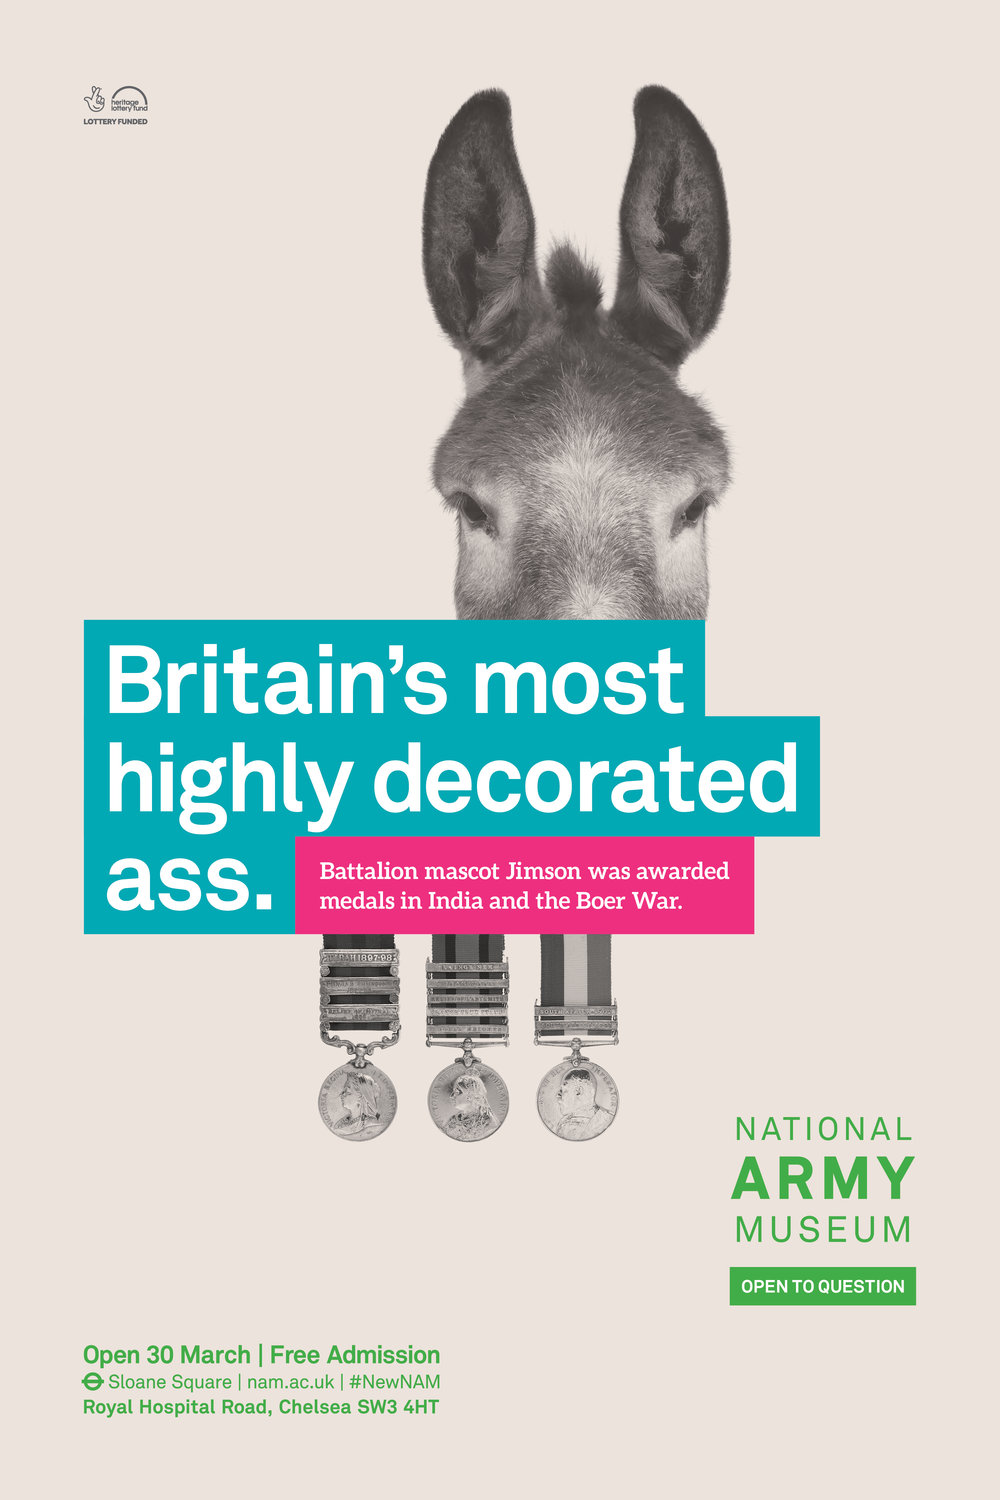 Read more about the campaign on Creative Review    here